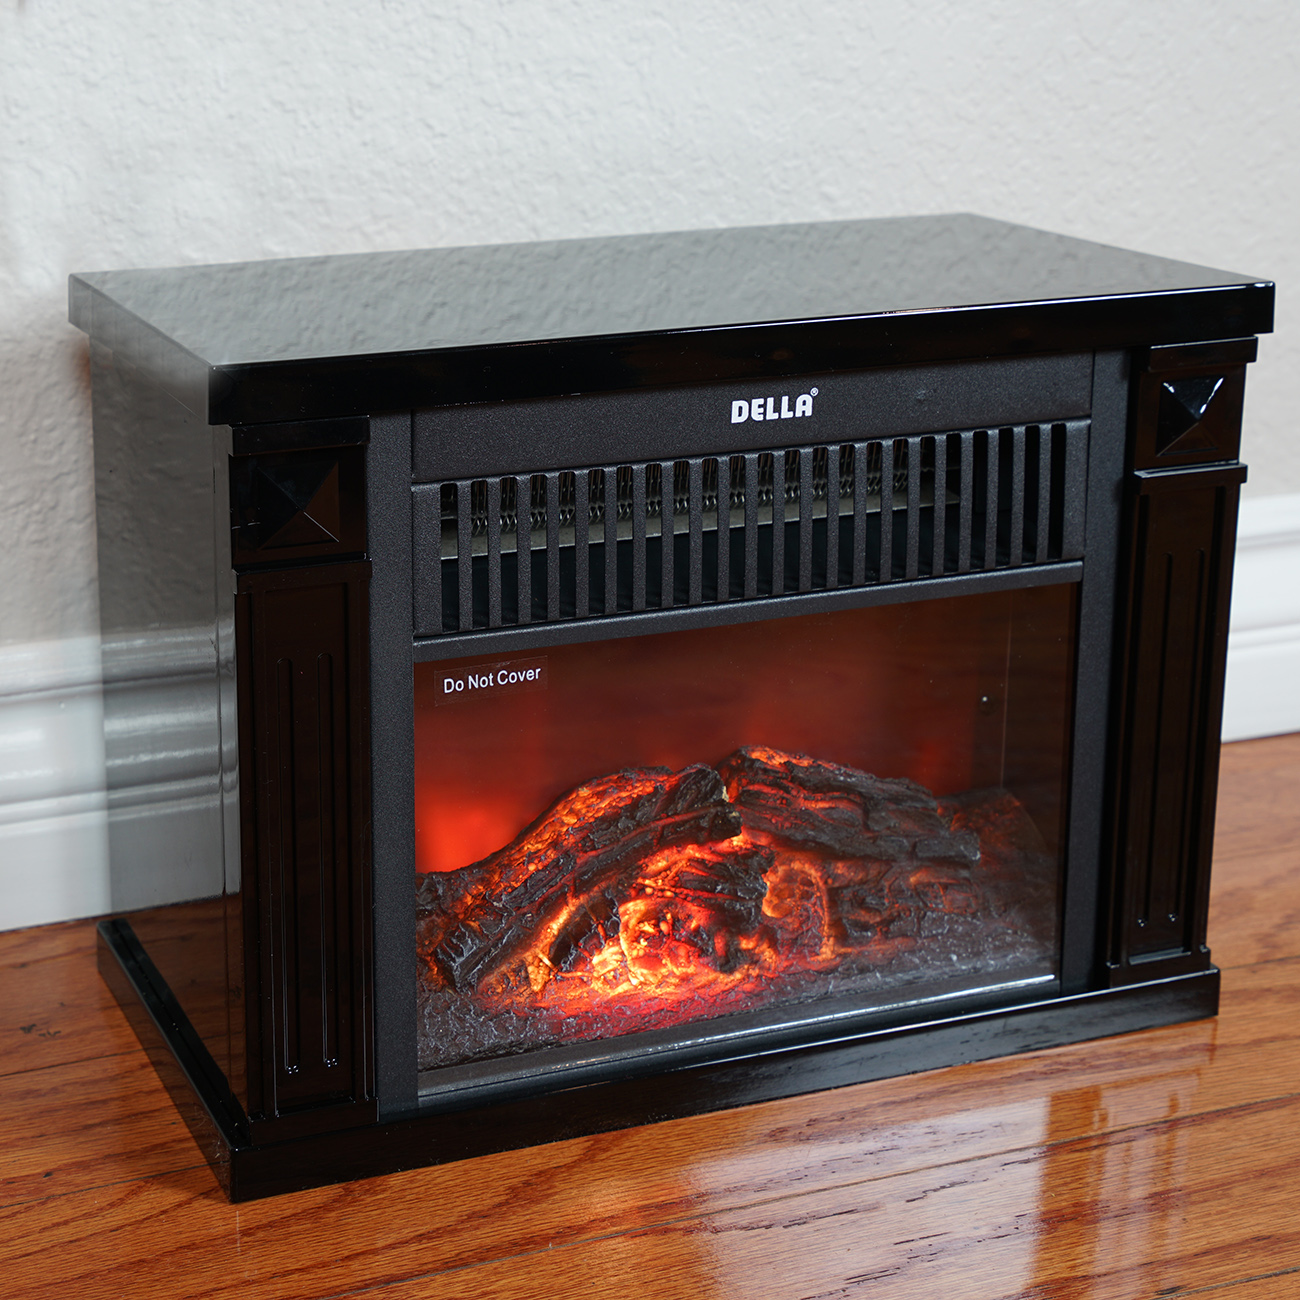 Infrared Tabletop Space Heater Flame Effect Mini Electric Fireplace Portable | Home & Garden